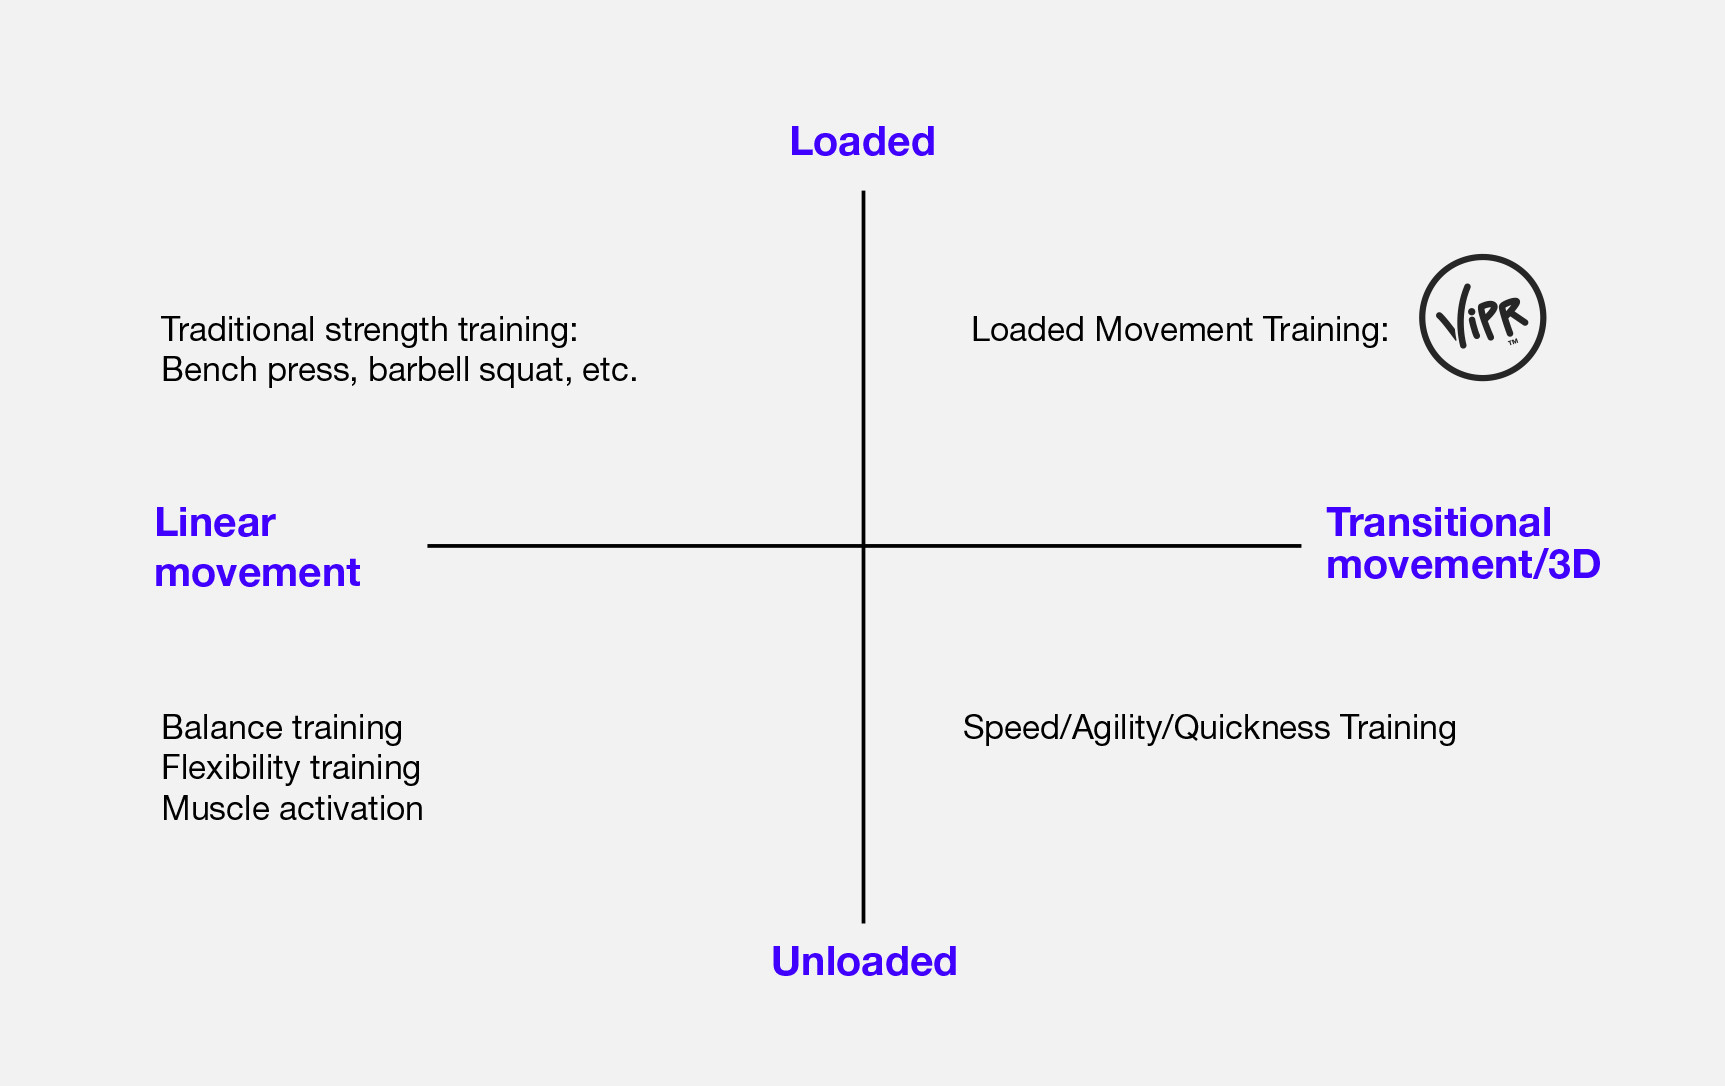 vipr blog strength training vipr fitness professionals say how is loaded movement training vipr better than traditional strength training such as squats bench presses and deadlifts